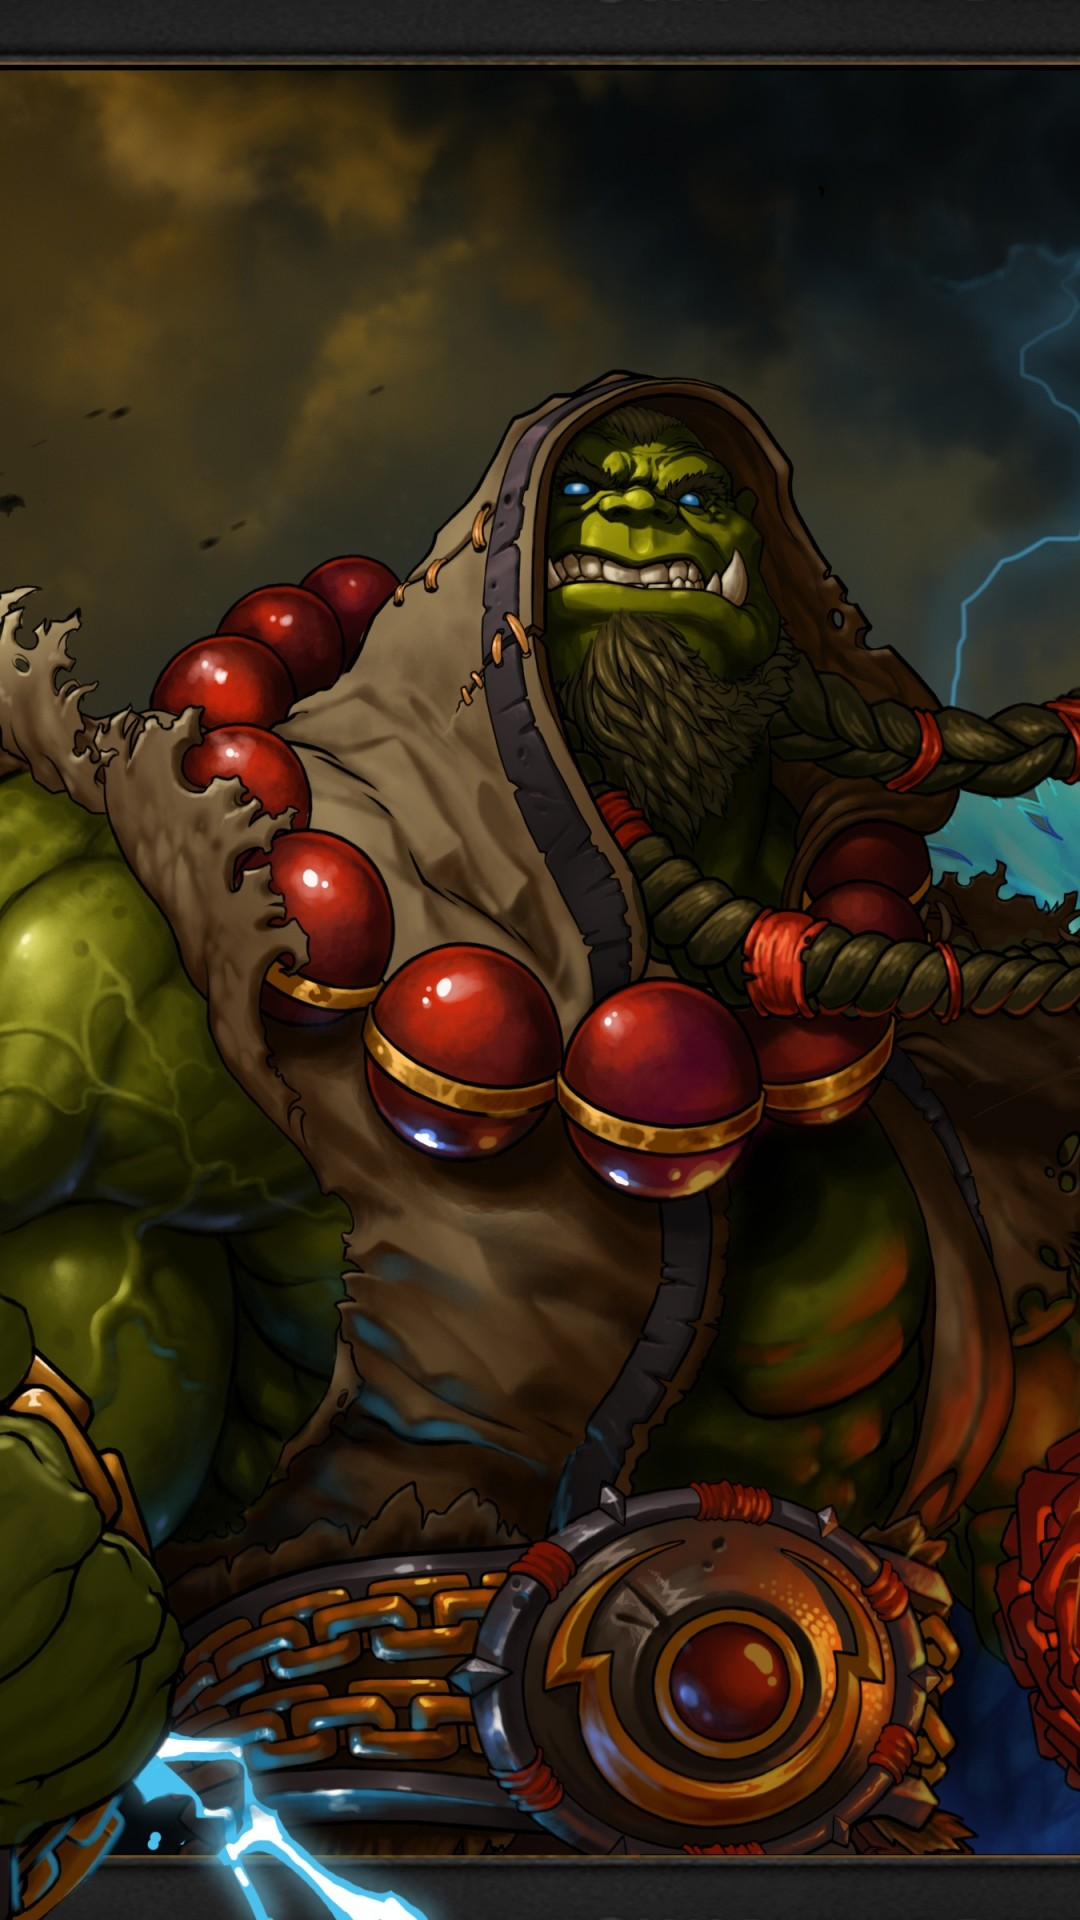 Preview wallpaper world of warcraft, shaman, thrall, blizzard, lightning,  orc 1080×1920